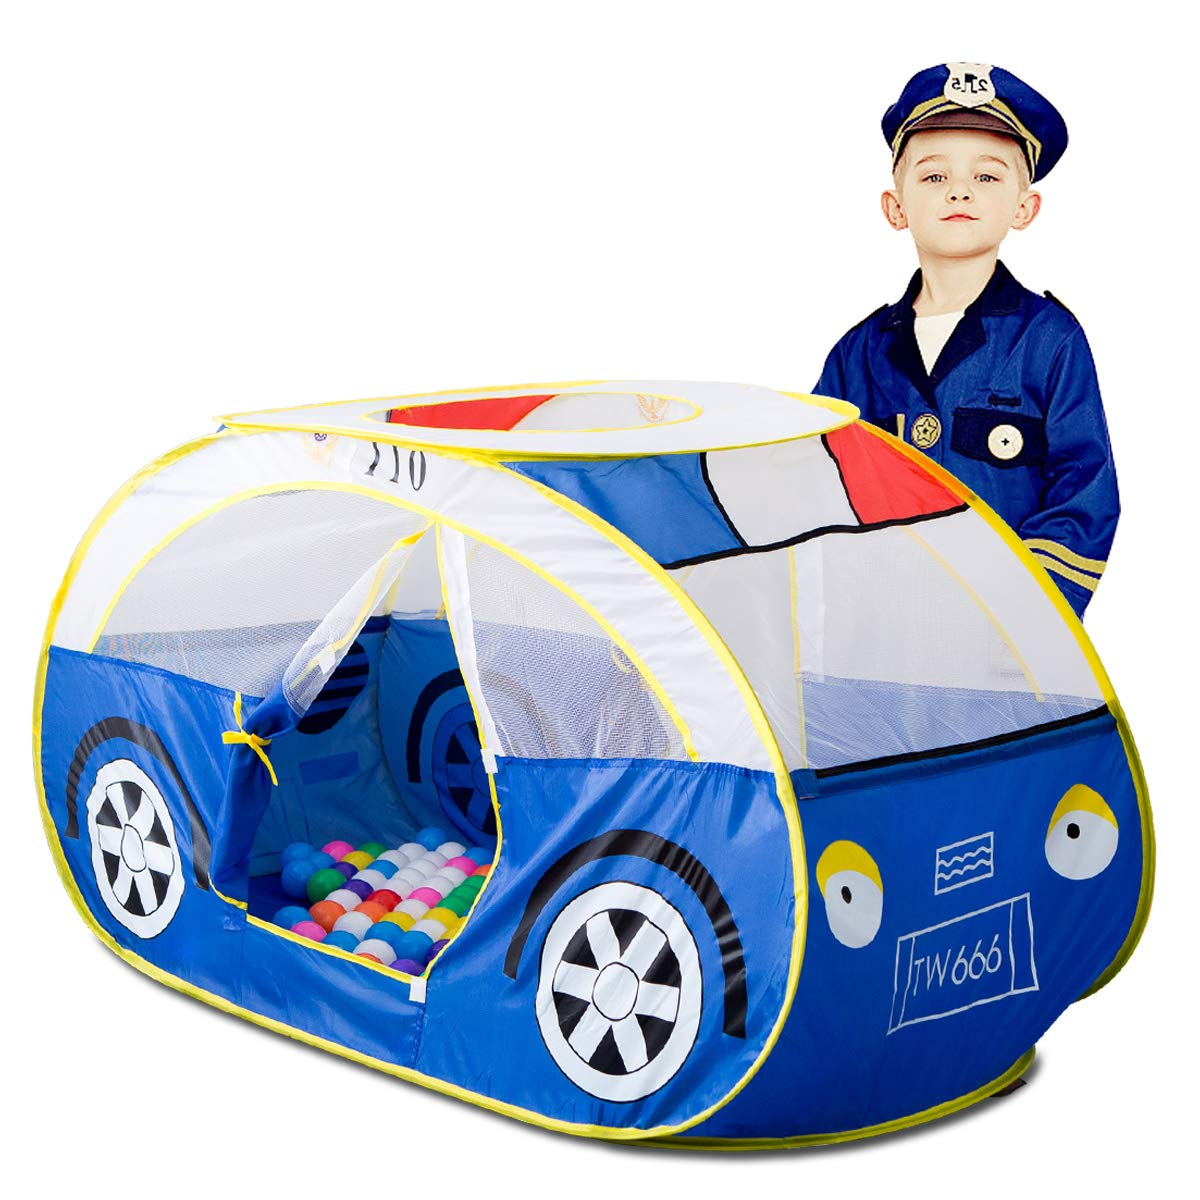 Artiron Police Car Play Tent, Indoor and Outdoor Kids Vehicle Castle Pop Up Tent Playhouse as Great Birthday Gift Toys for 1-8 Years Old Toddlers Baby Boys Girls (Police Car)